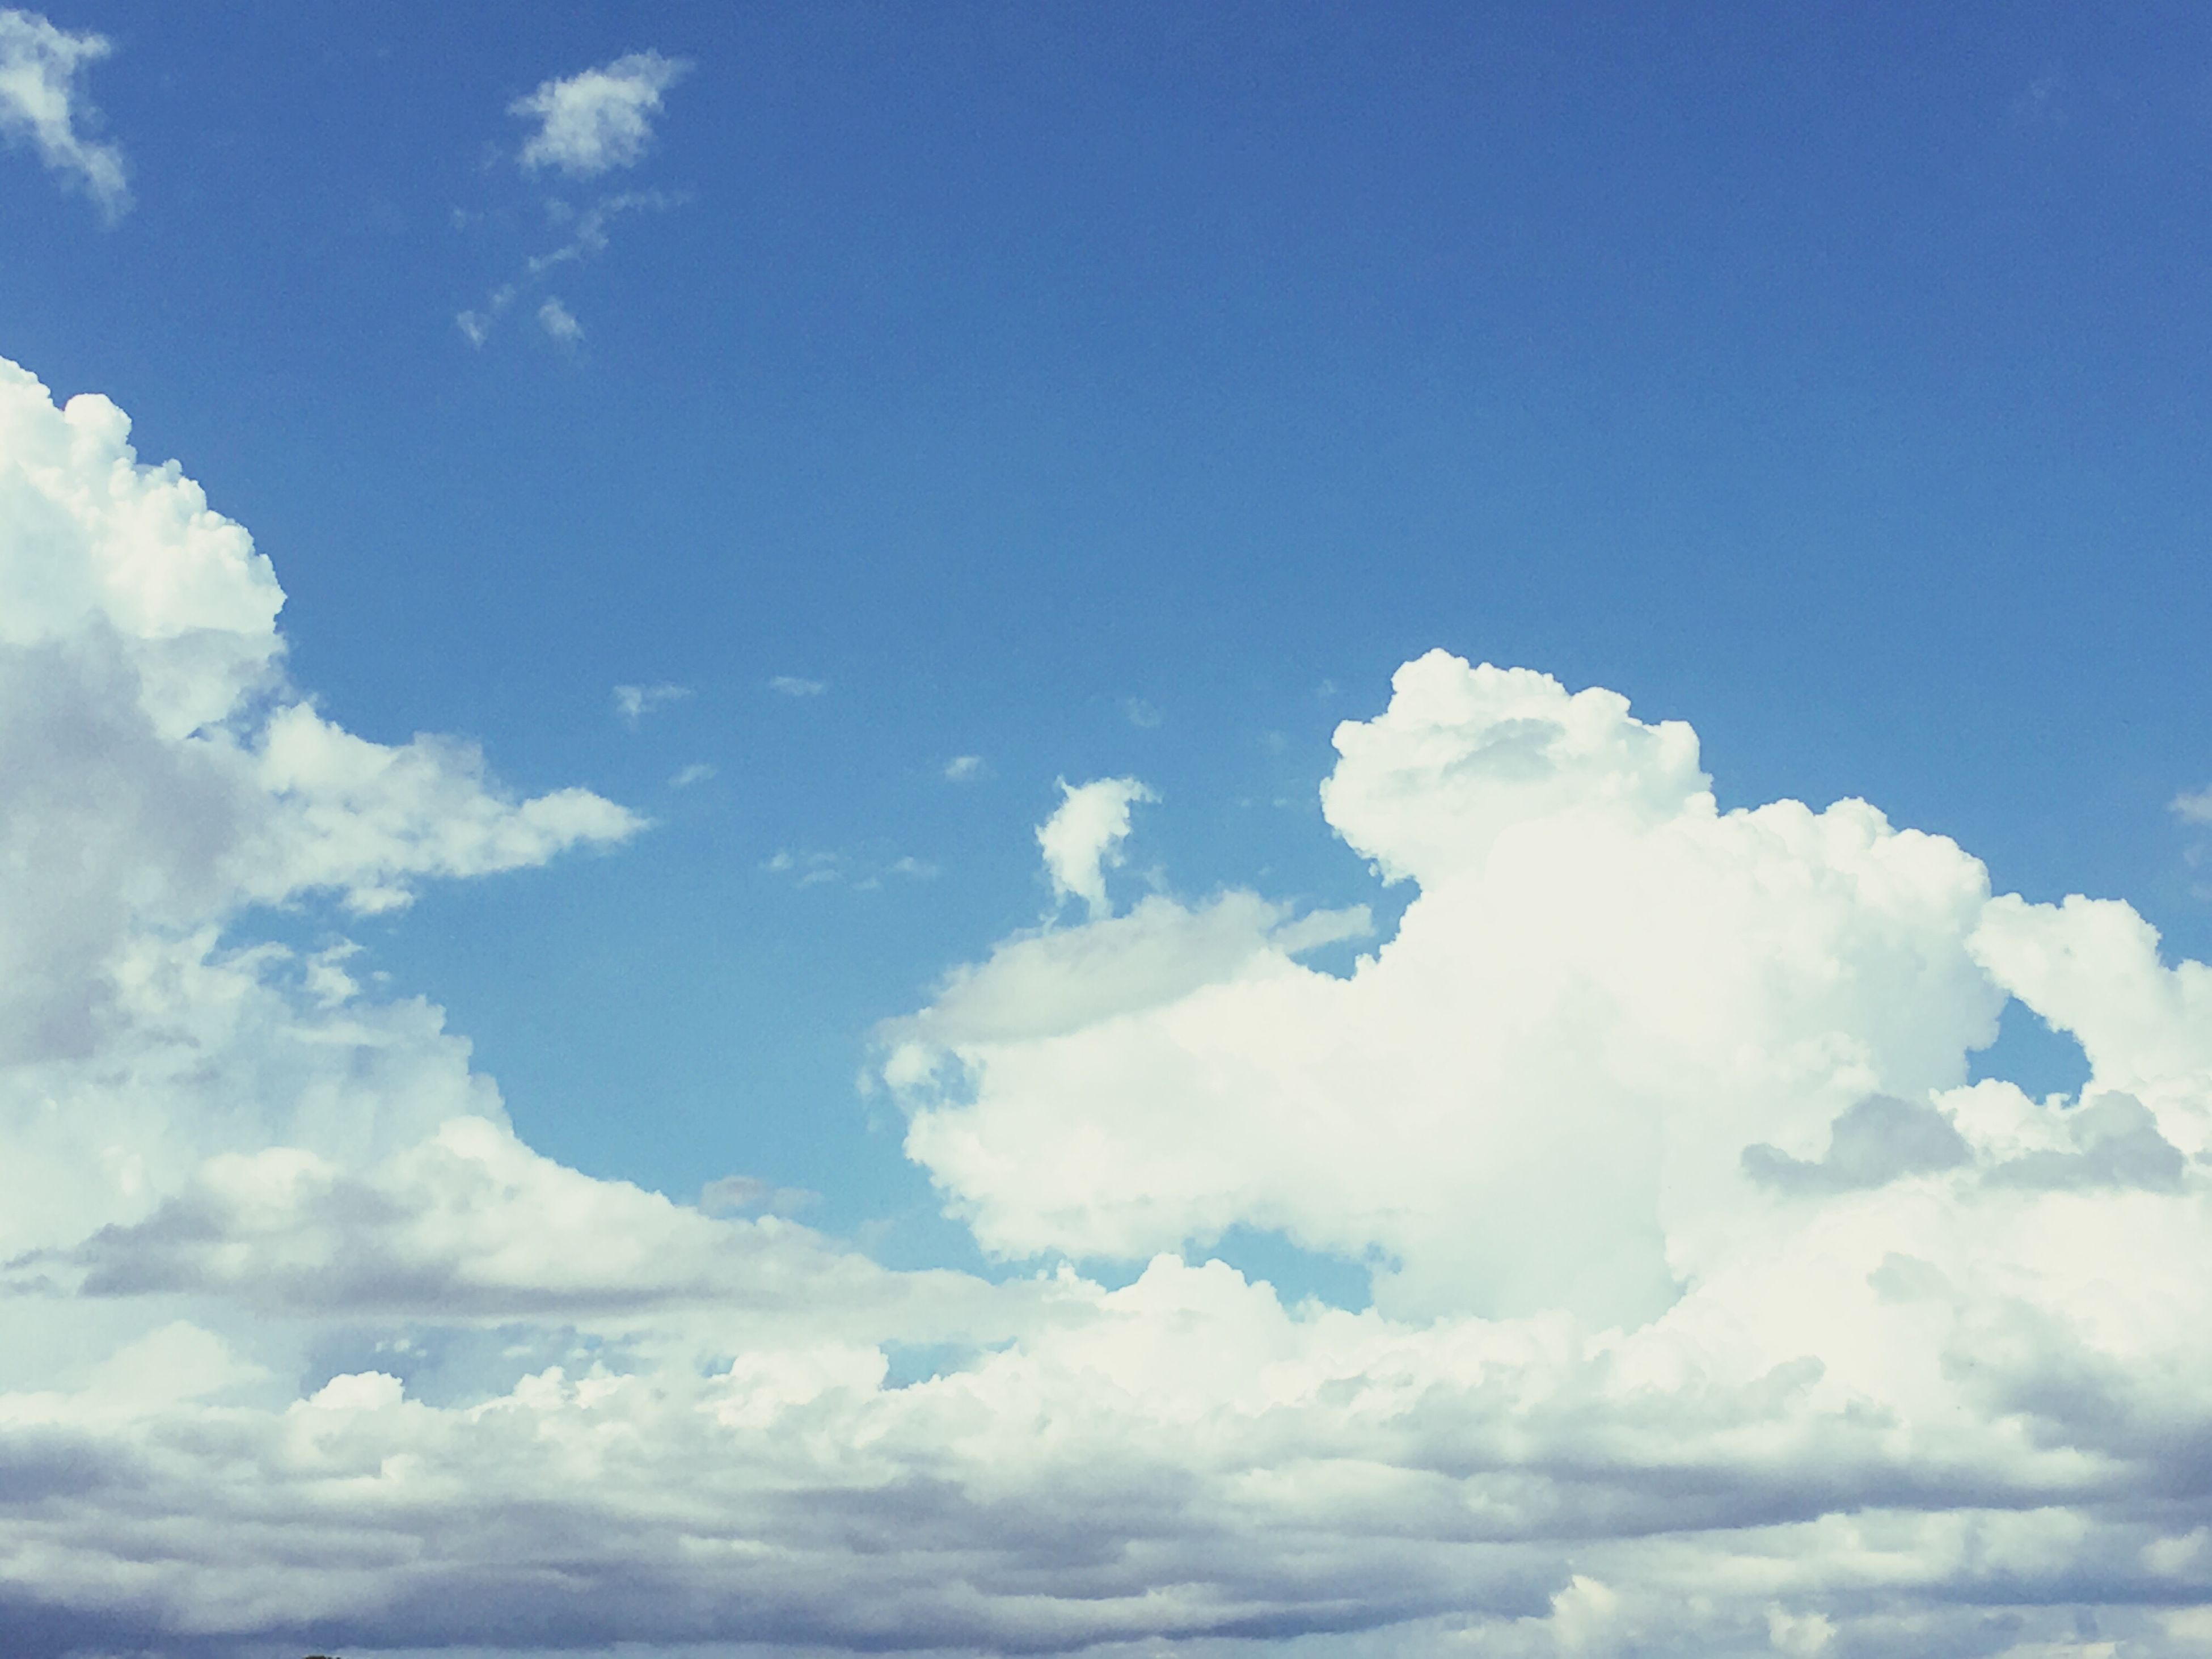 blue, sky, beauty in nature, low angle view, tranquility, cloud - sky, scenics, tranquil scene, nature, cloud, sky only, majestic, day, cloudscape, outdoors, full frame, softness, heaven, fluffy, cumulus cloud, no people